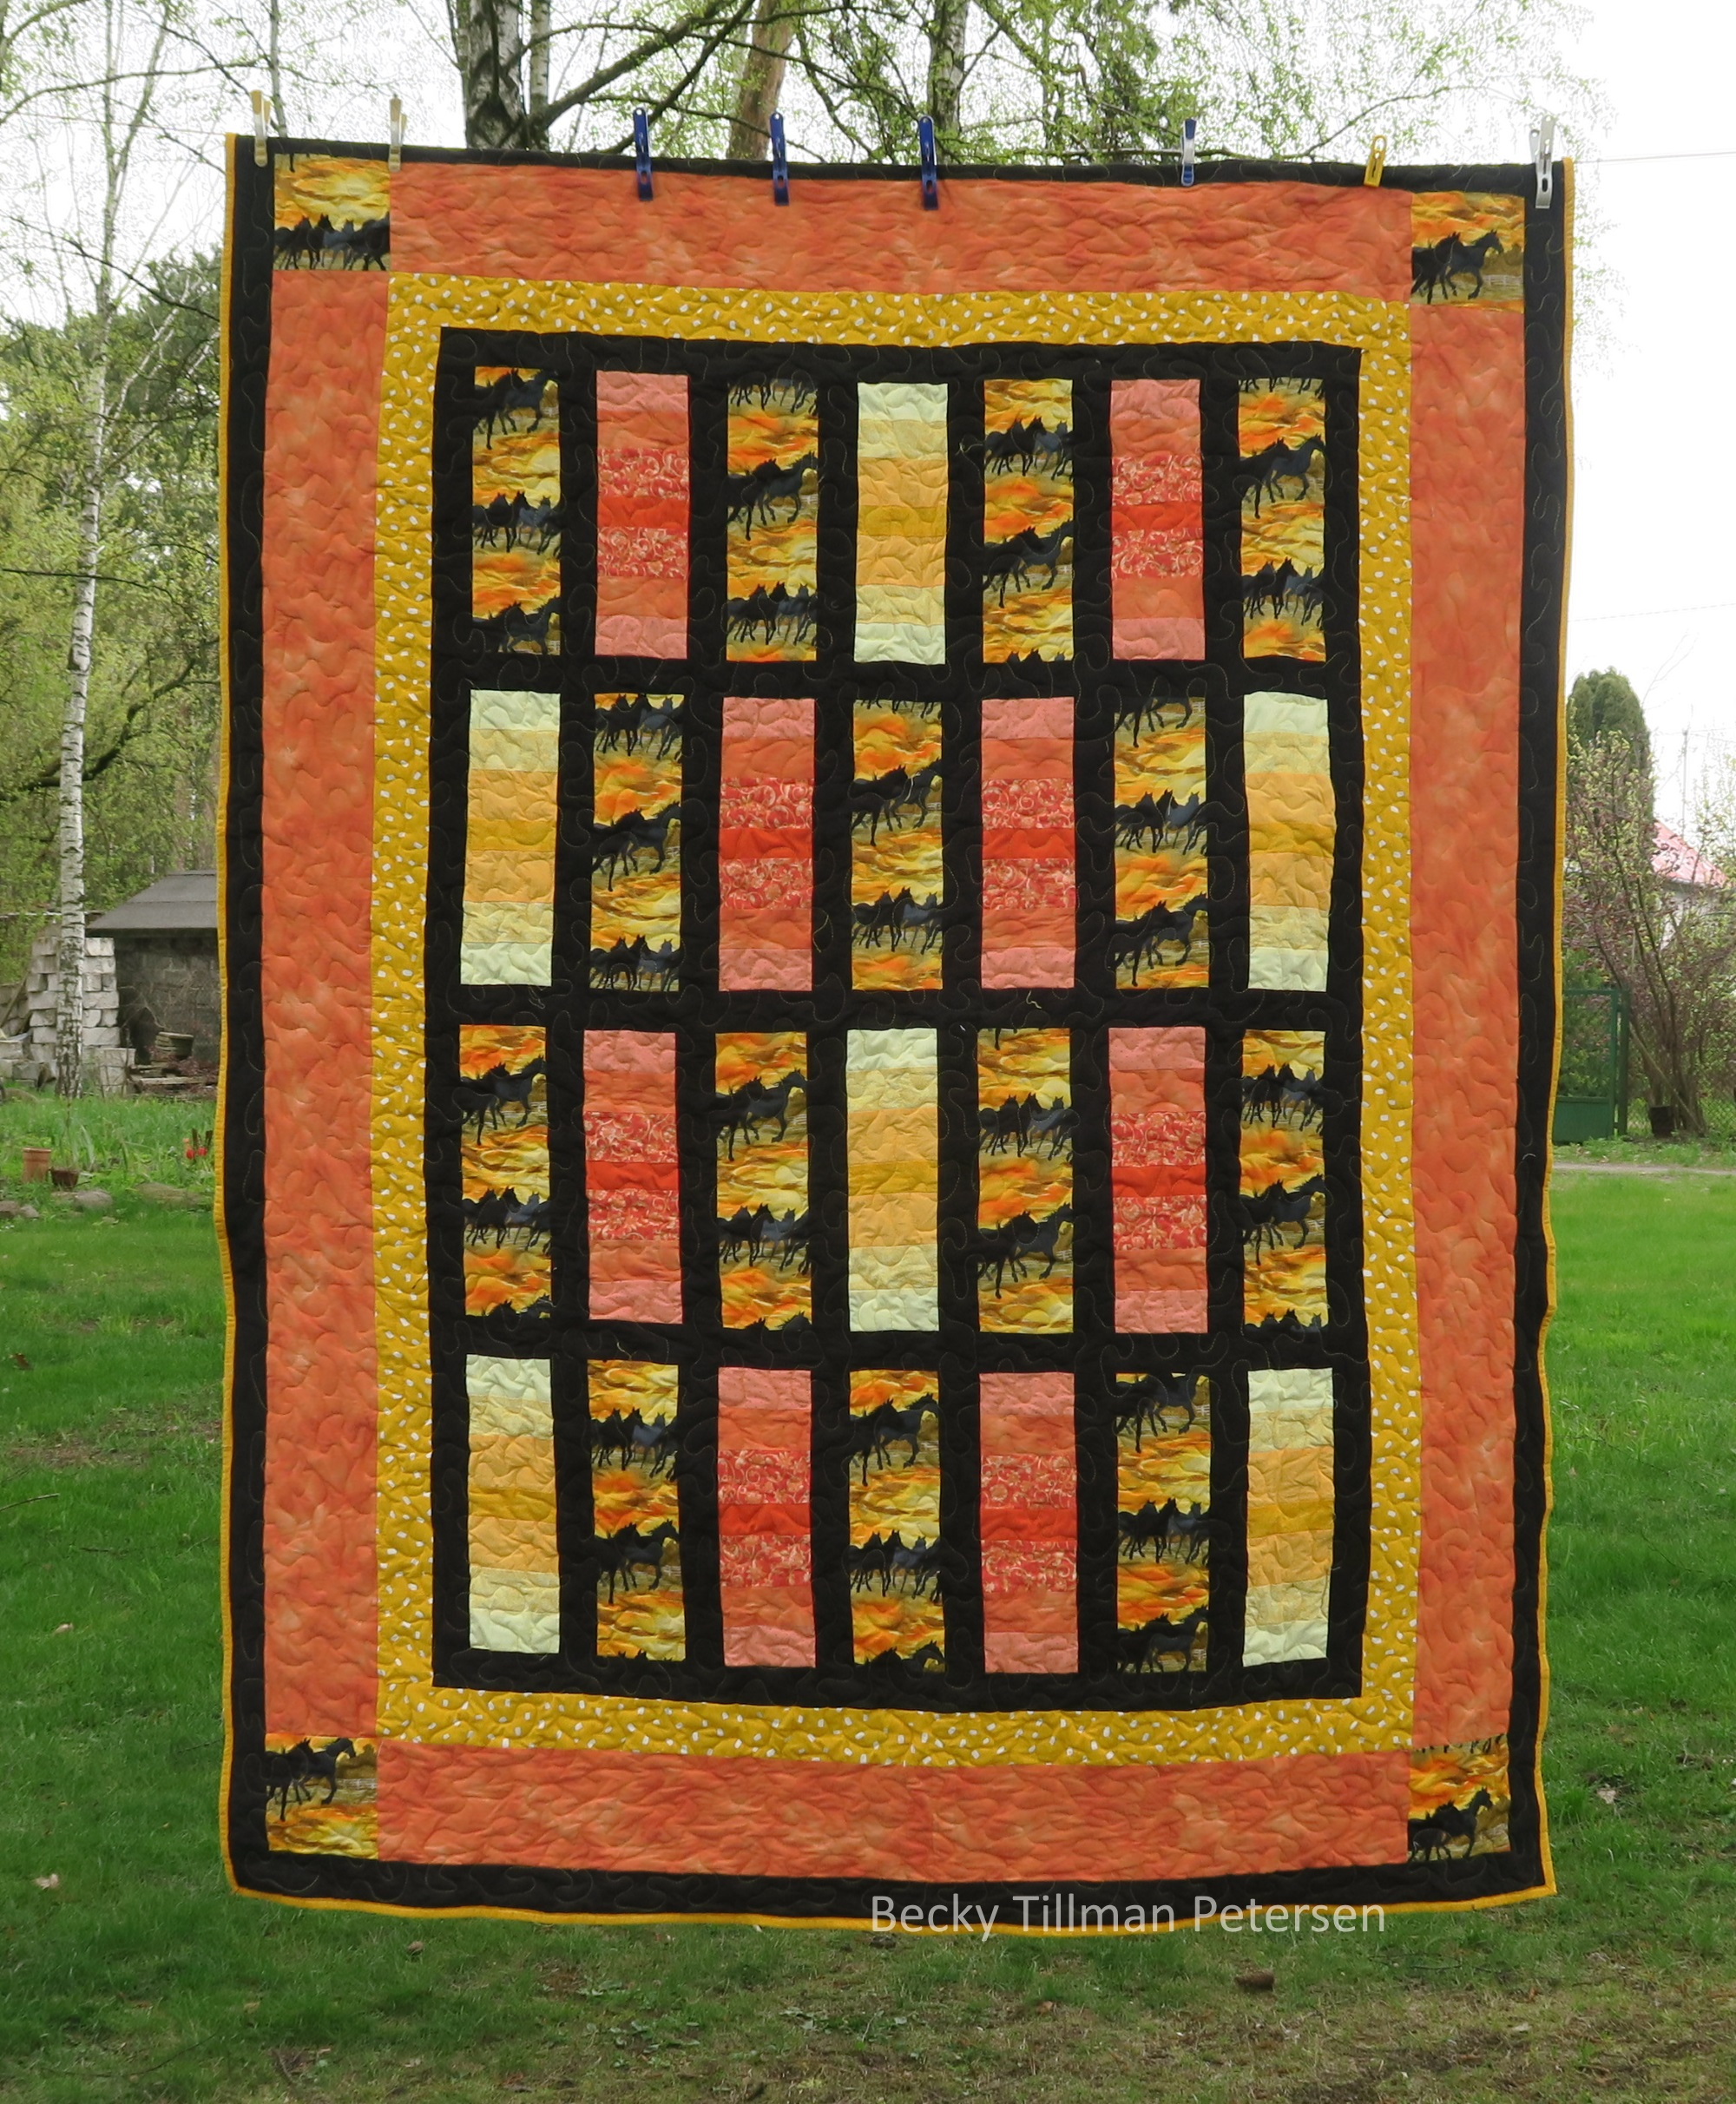 Number 2 - more orange bargello sections than yellow